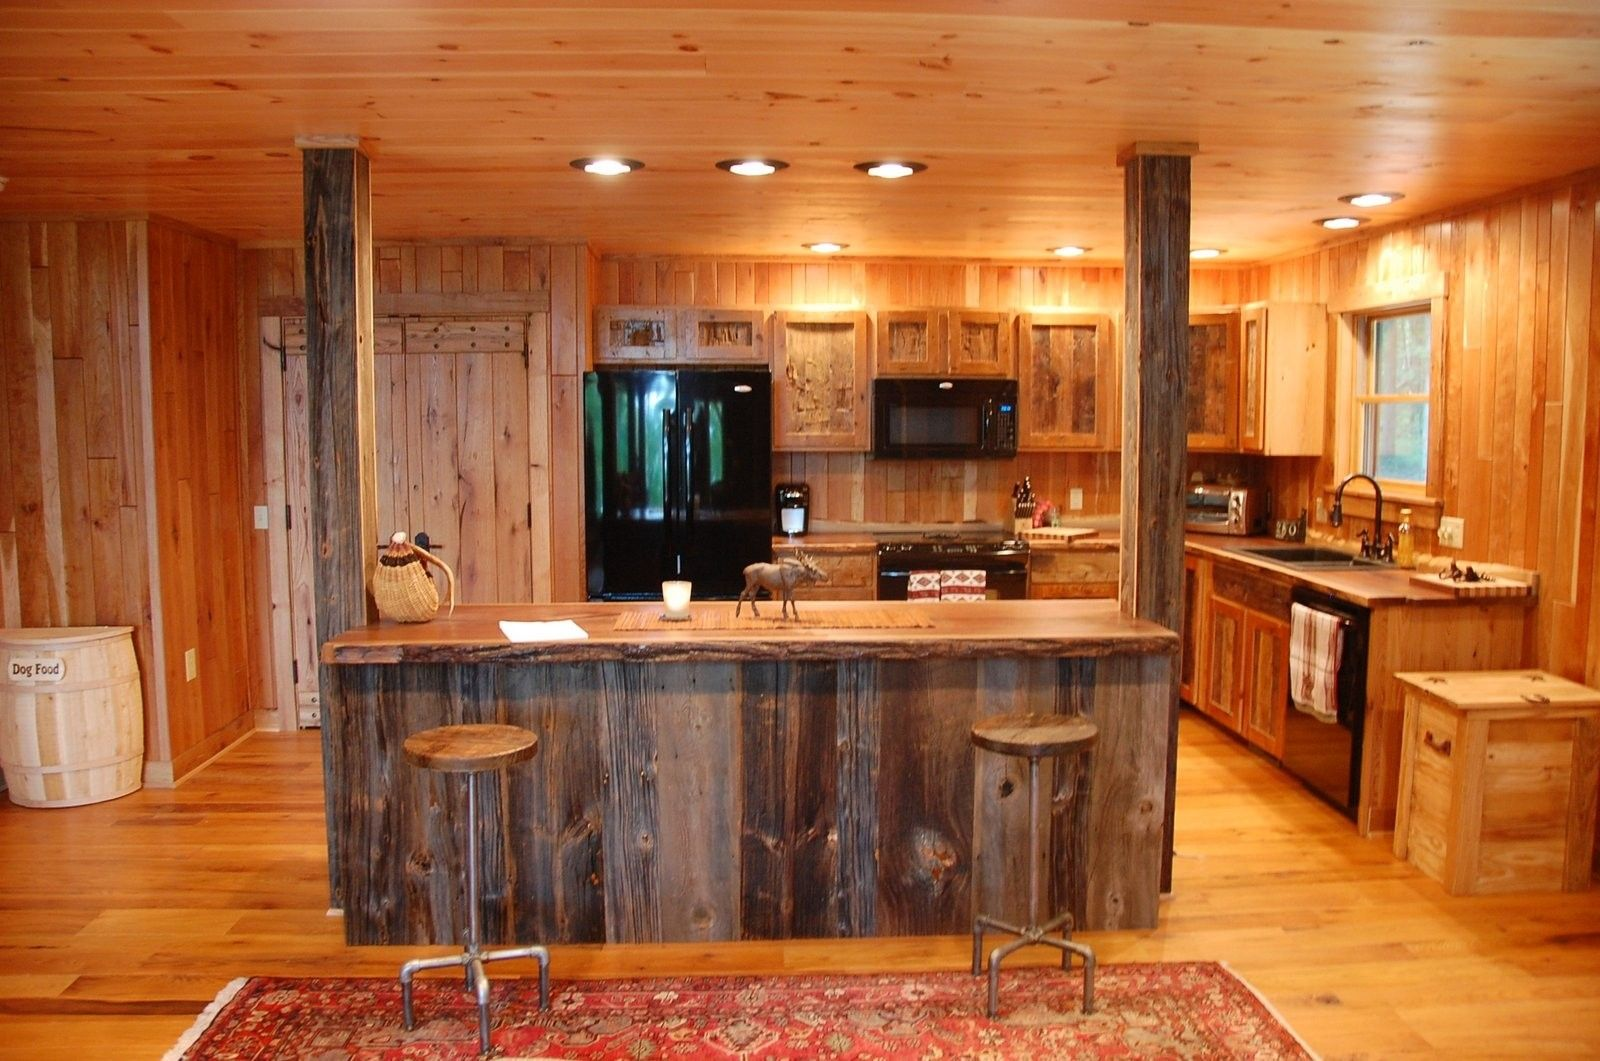 Custom made reclaimed wood rustic kitchen cabinets by for Wood kitchen cabinets